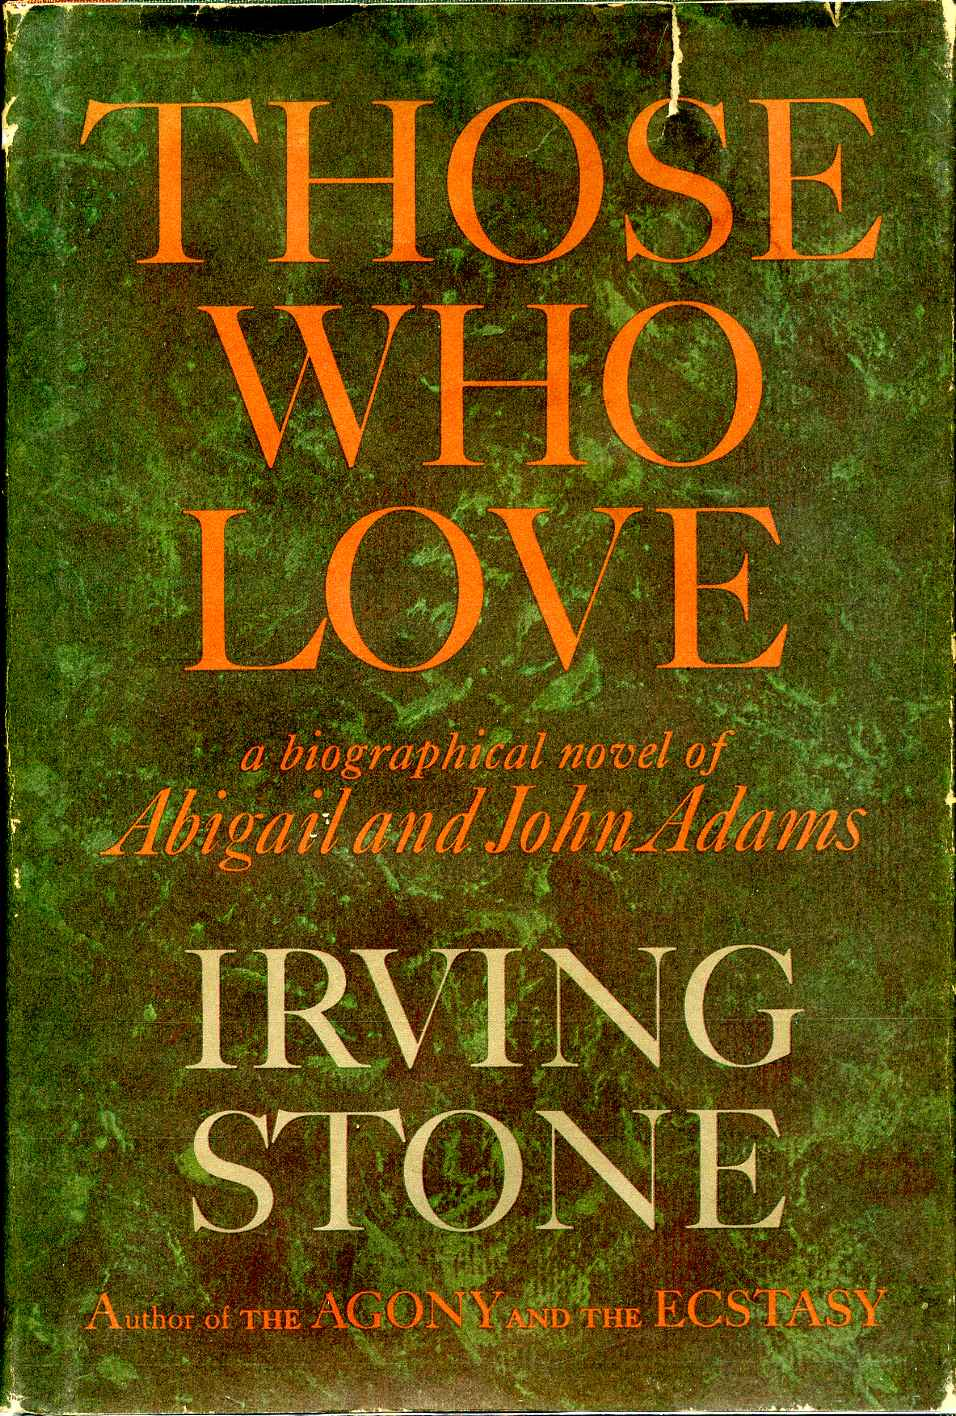 Image result for those who love irving stone book cover